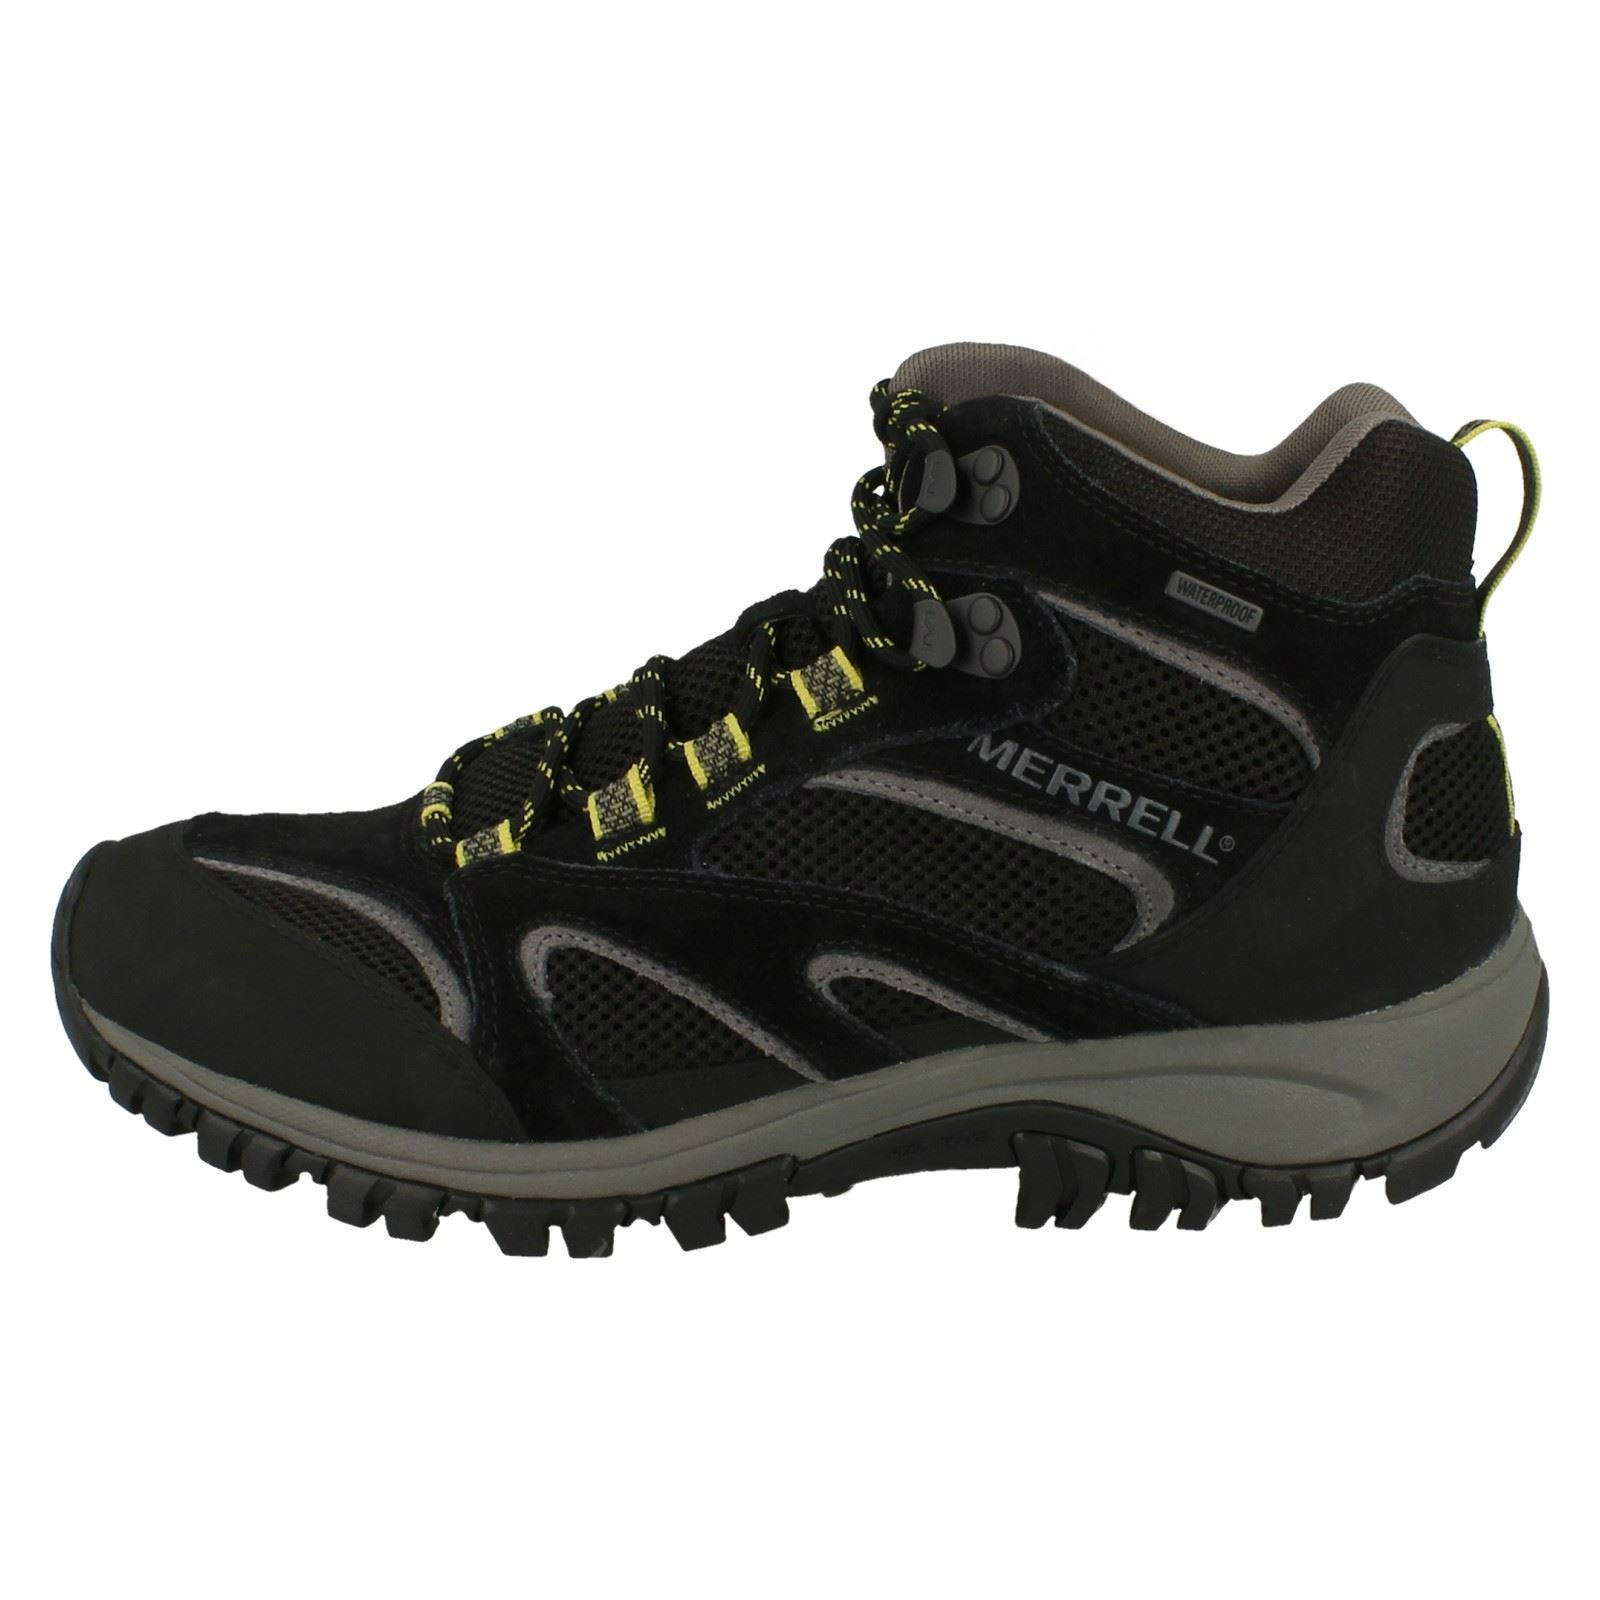 thumbnail 8 - Mens-Merrell-Phoenix-Mid-Waterproof-Walking-Boots